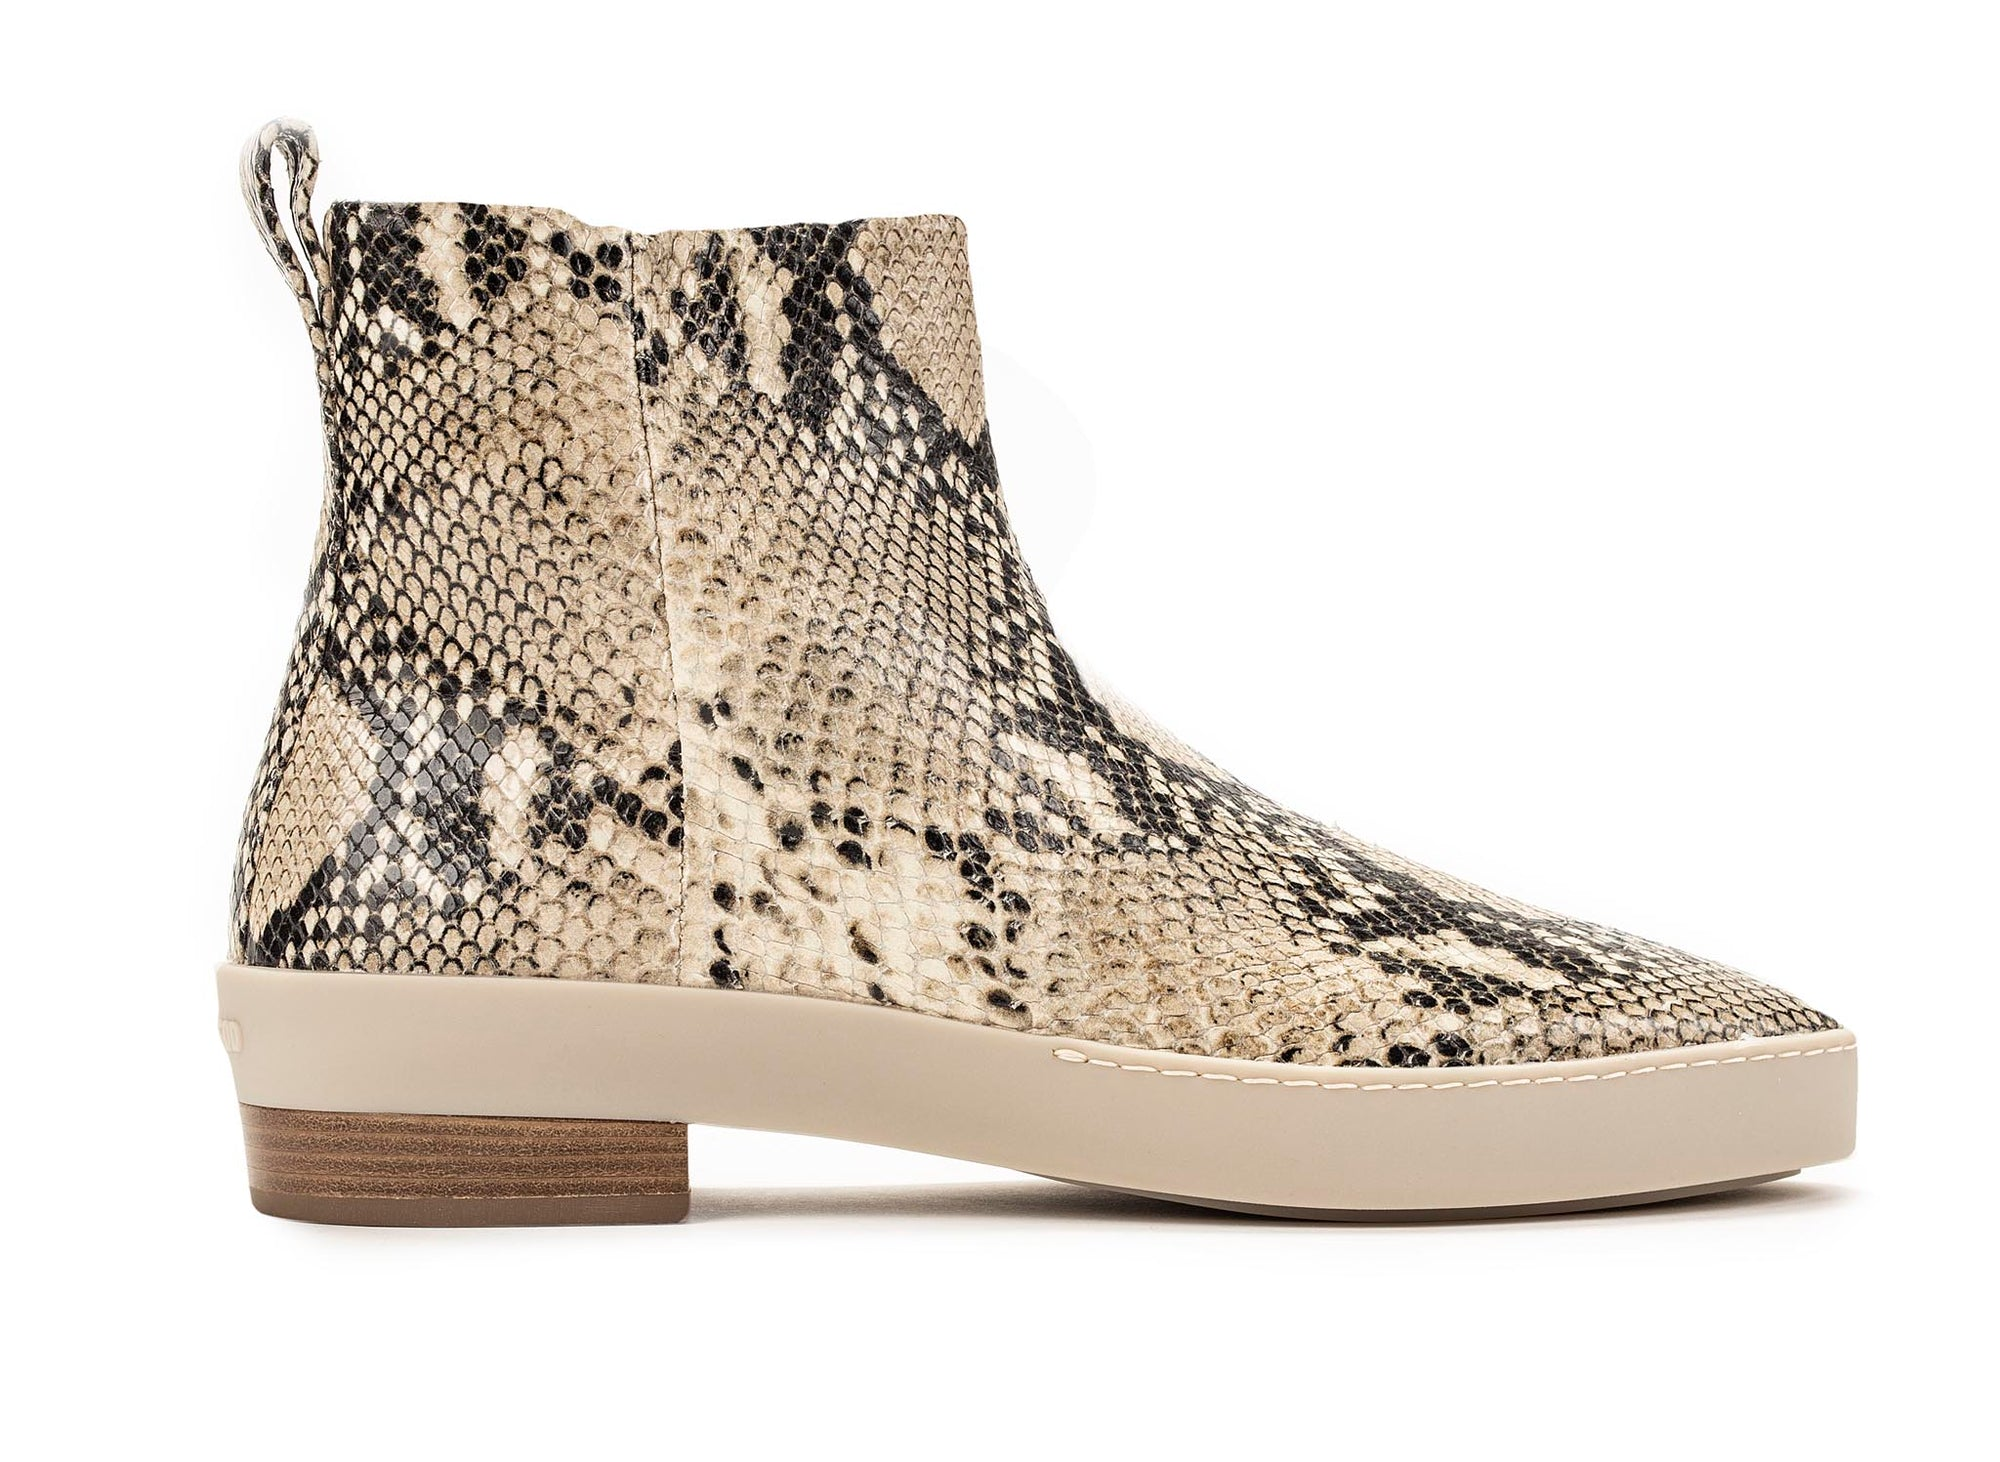 Fear of God Chelsea Santa Fe Boot 'Rust Embossed Snakeskin Print'